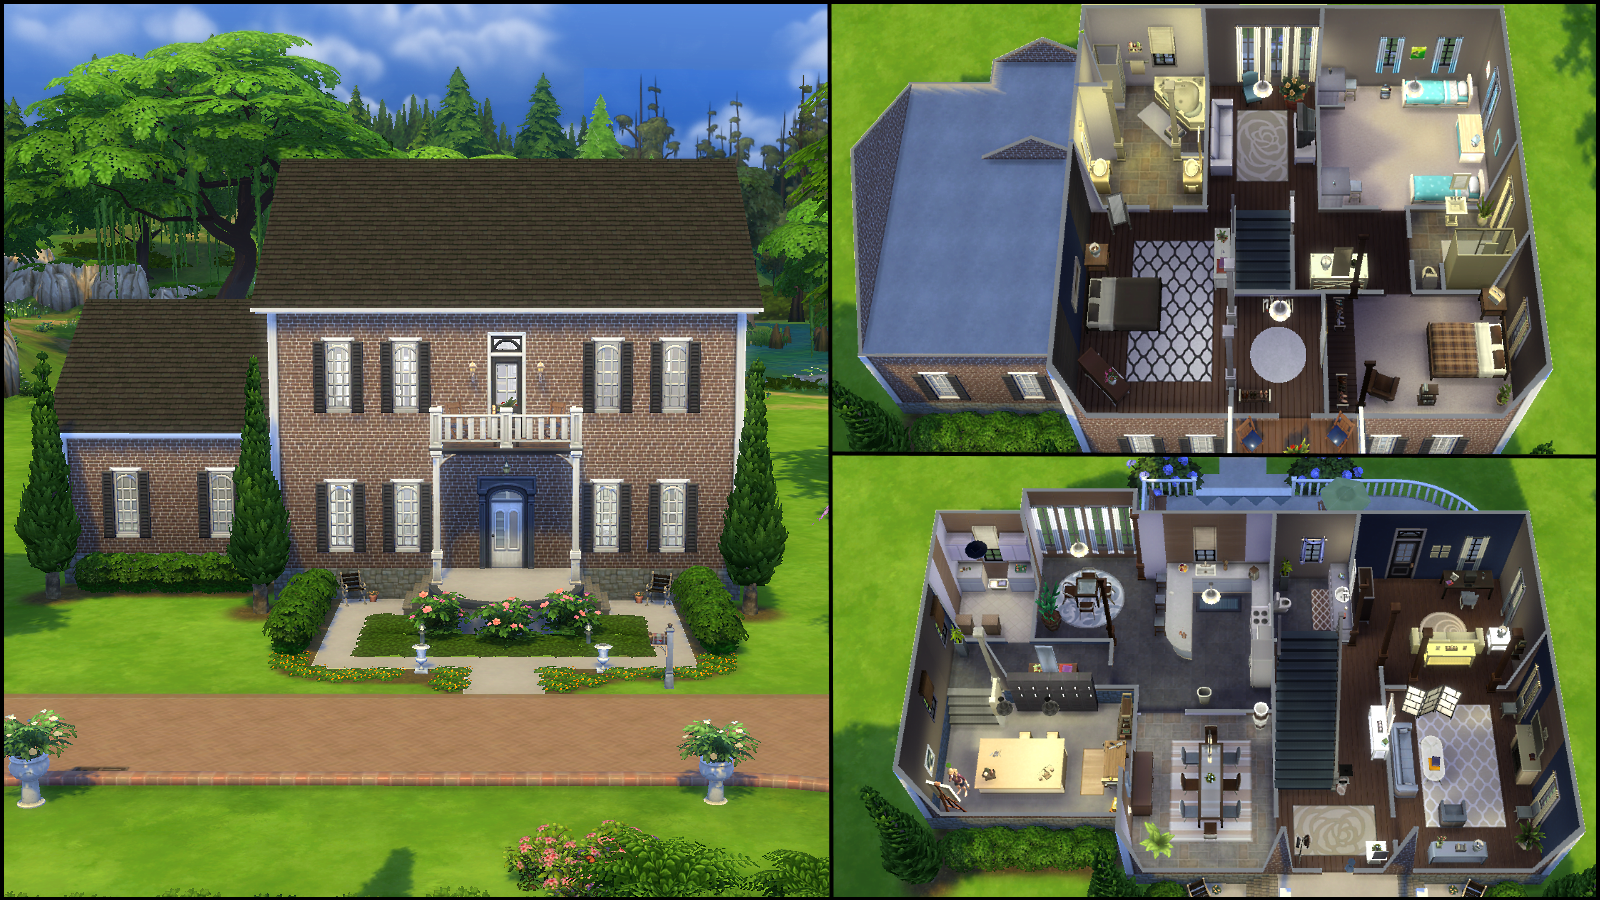 The sims 4 gallery spotlight simsvip page 3 for Home and garden room planner